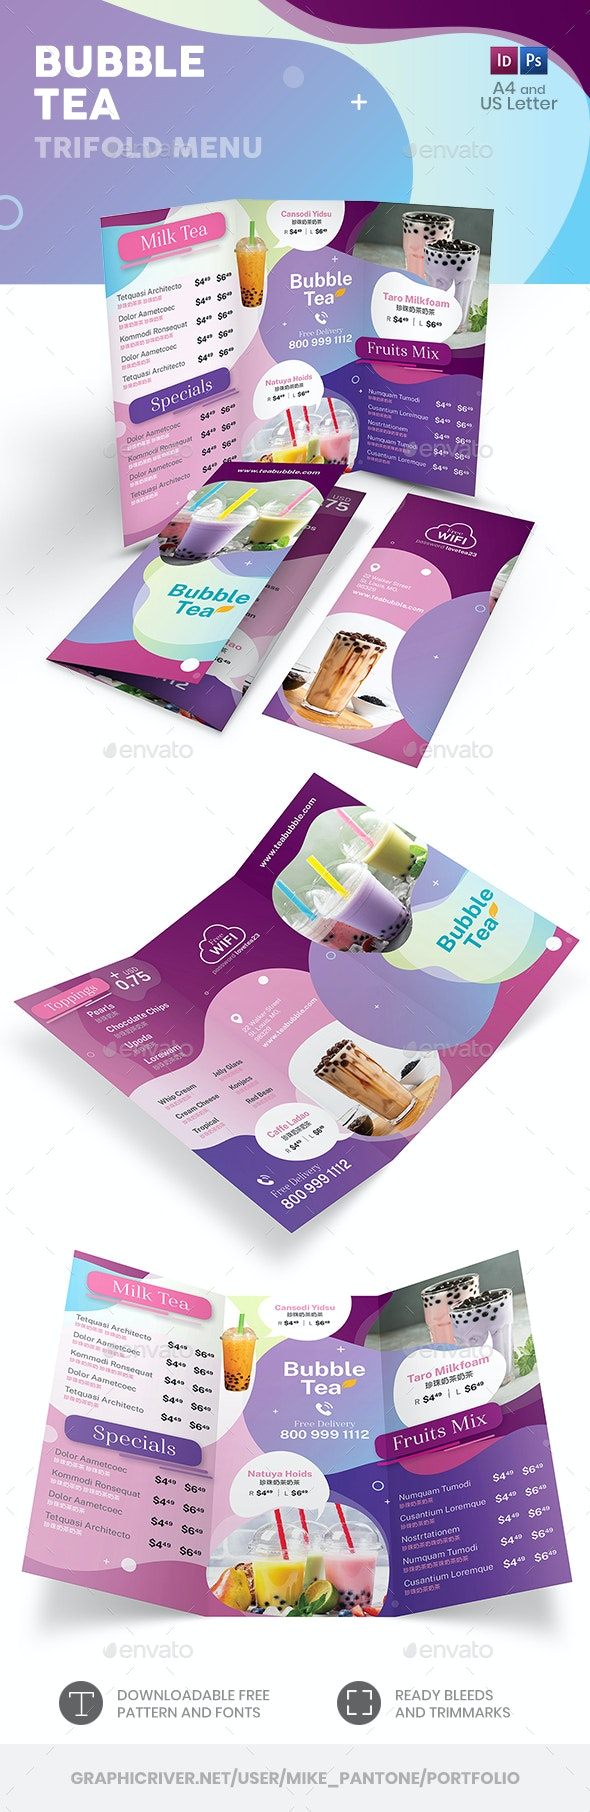 Bubble Tea Trifold Menu 3 - Food Menus Print Templates